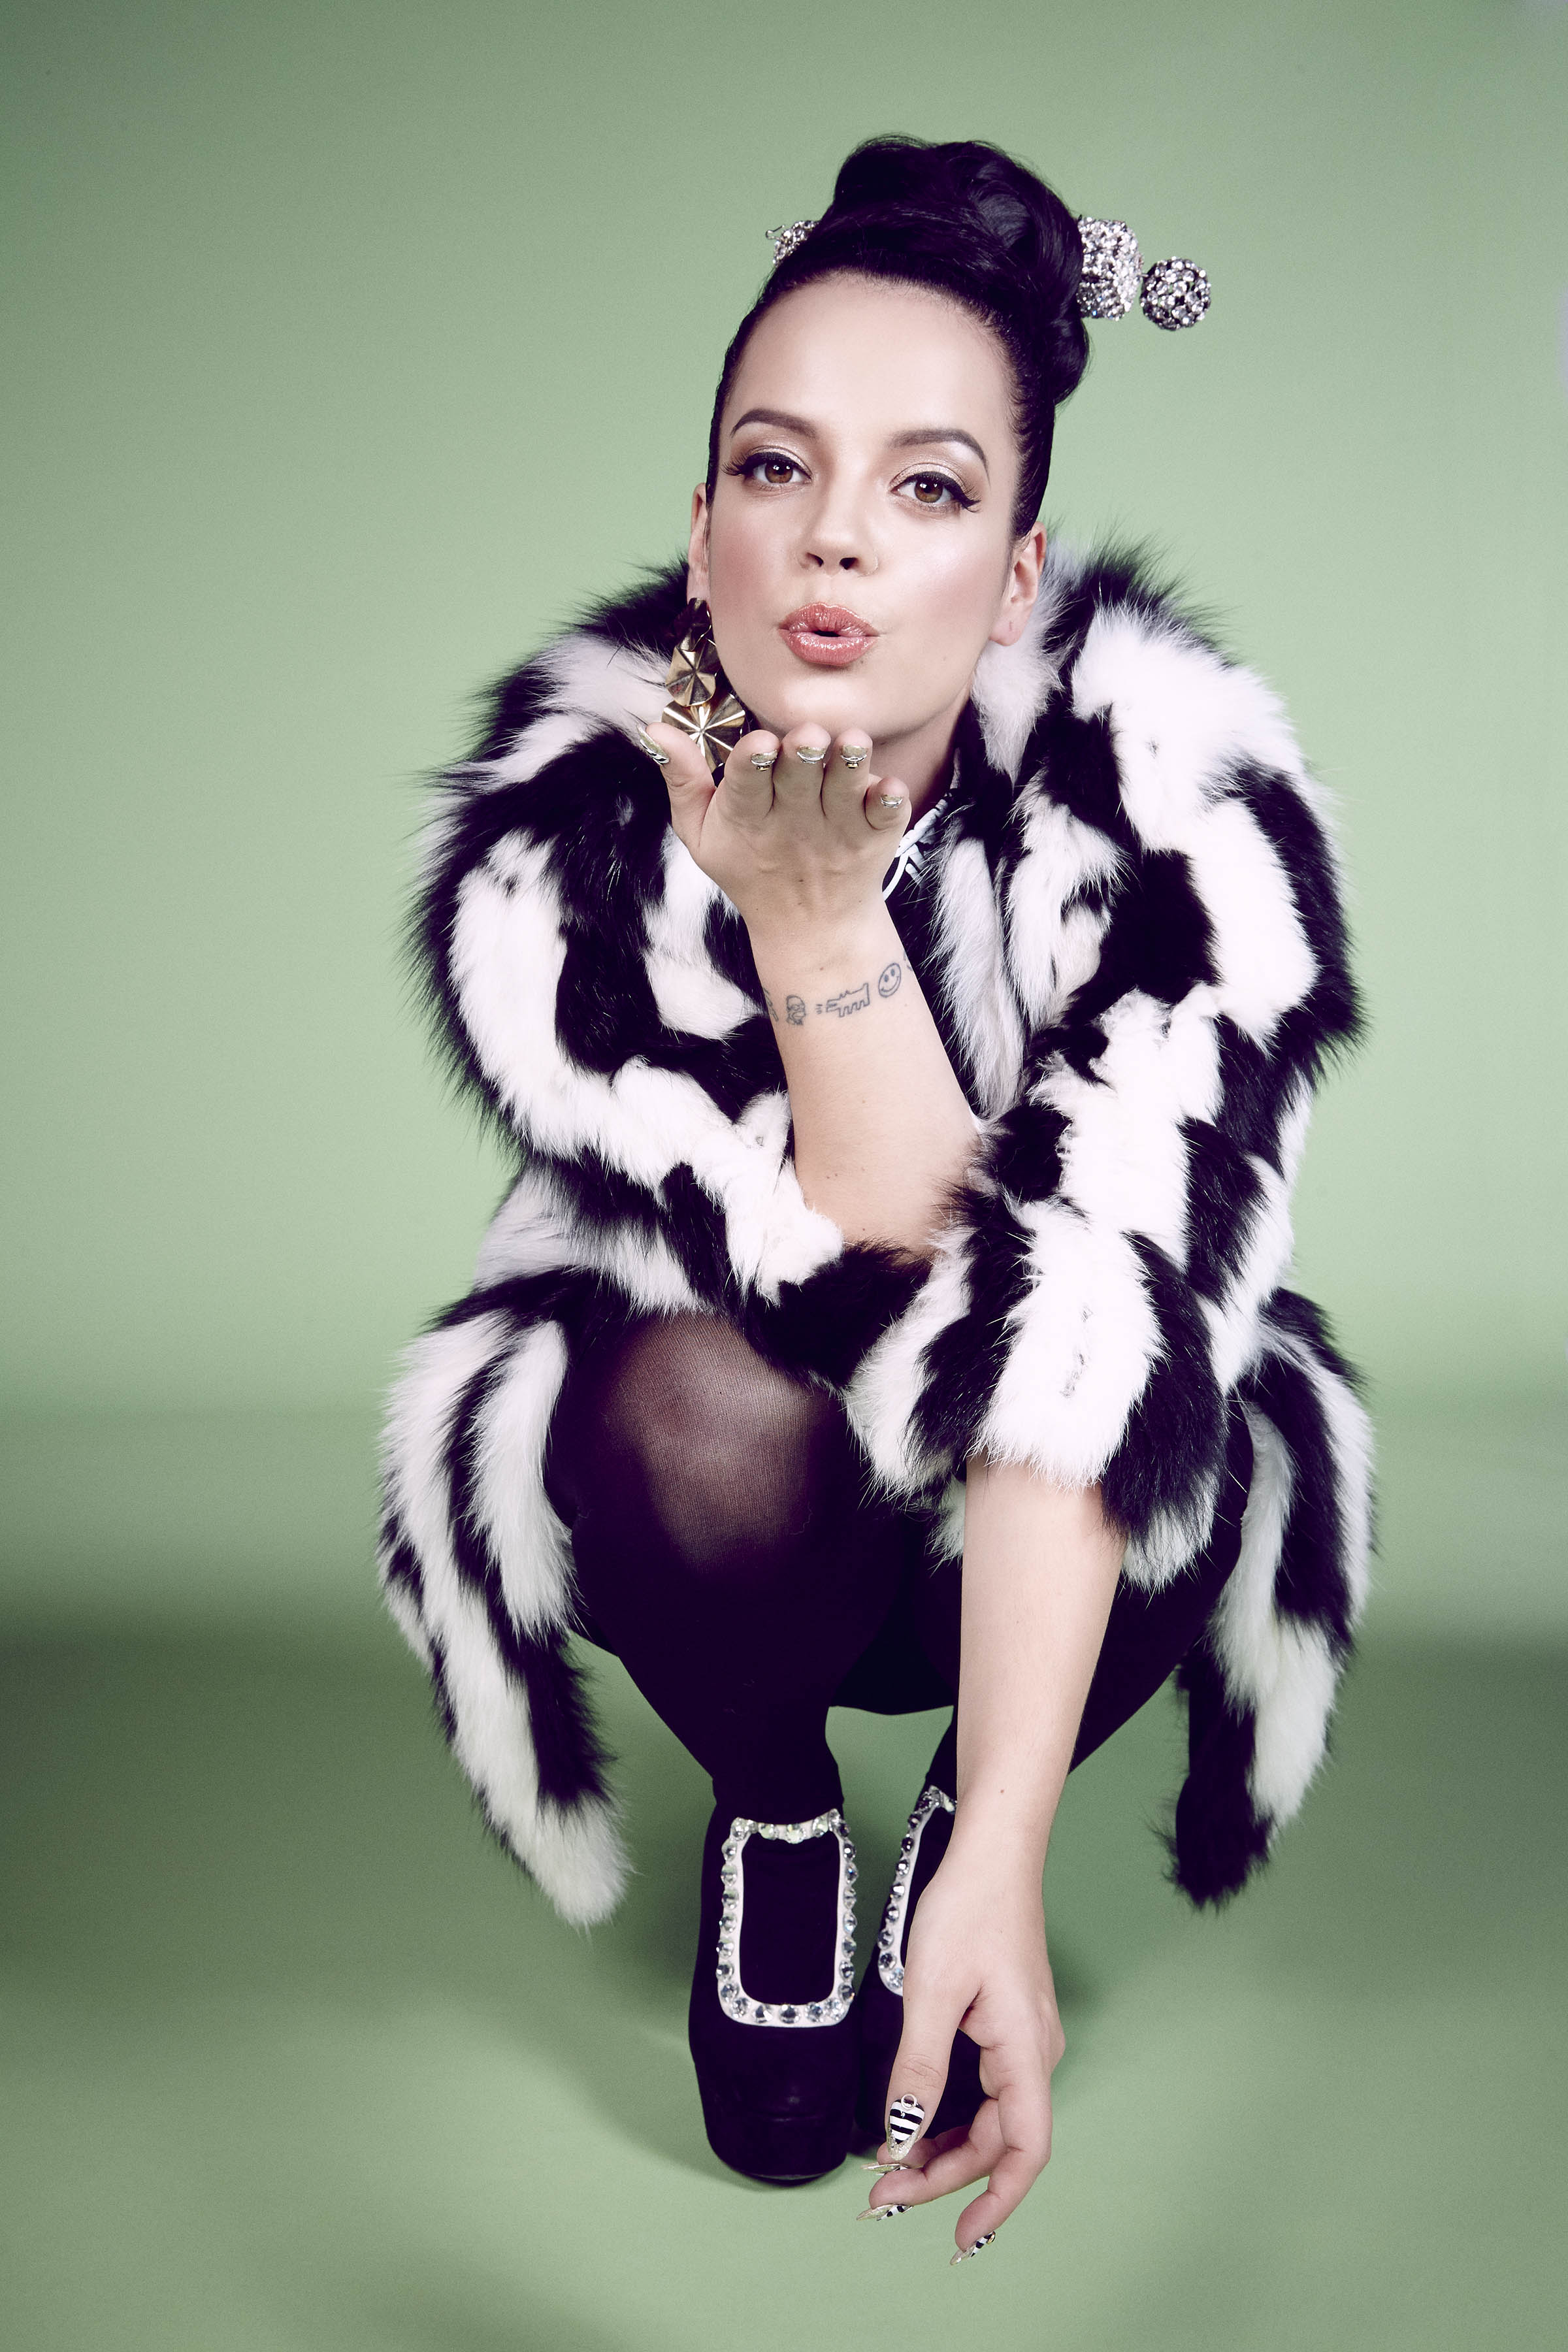 Lily Allen Speaks Out About Her 7 Year Ordeal With A Stalker Lily Allen 2013 11 21 001